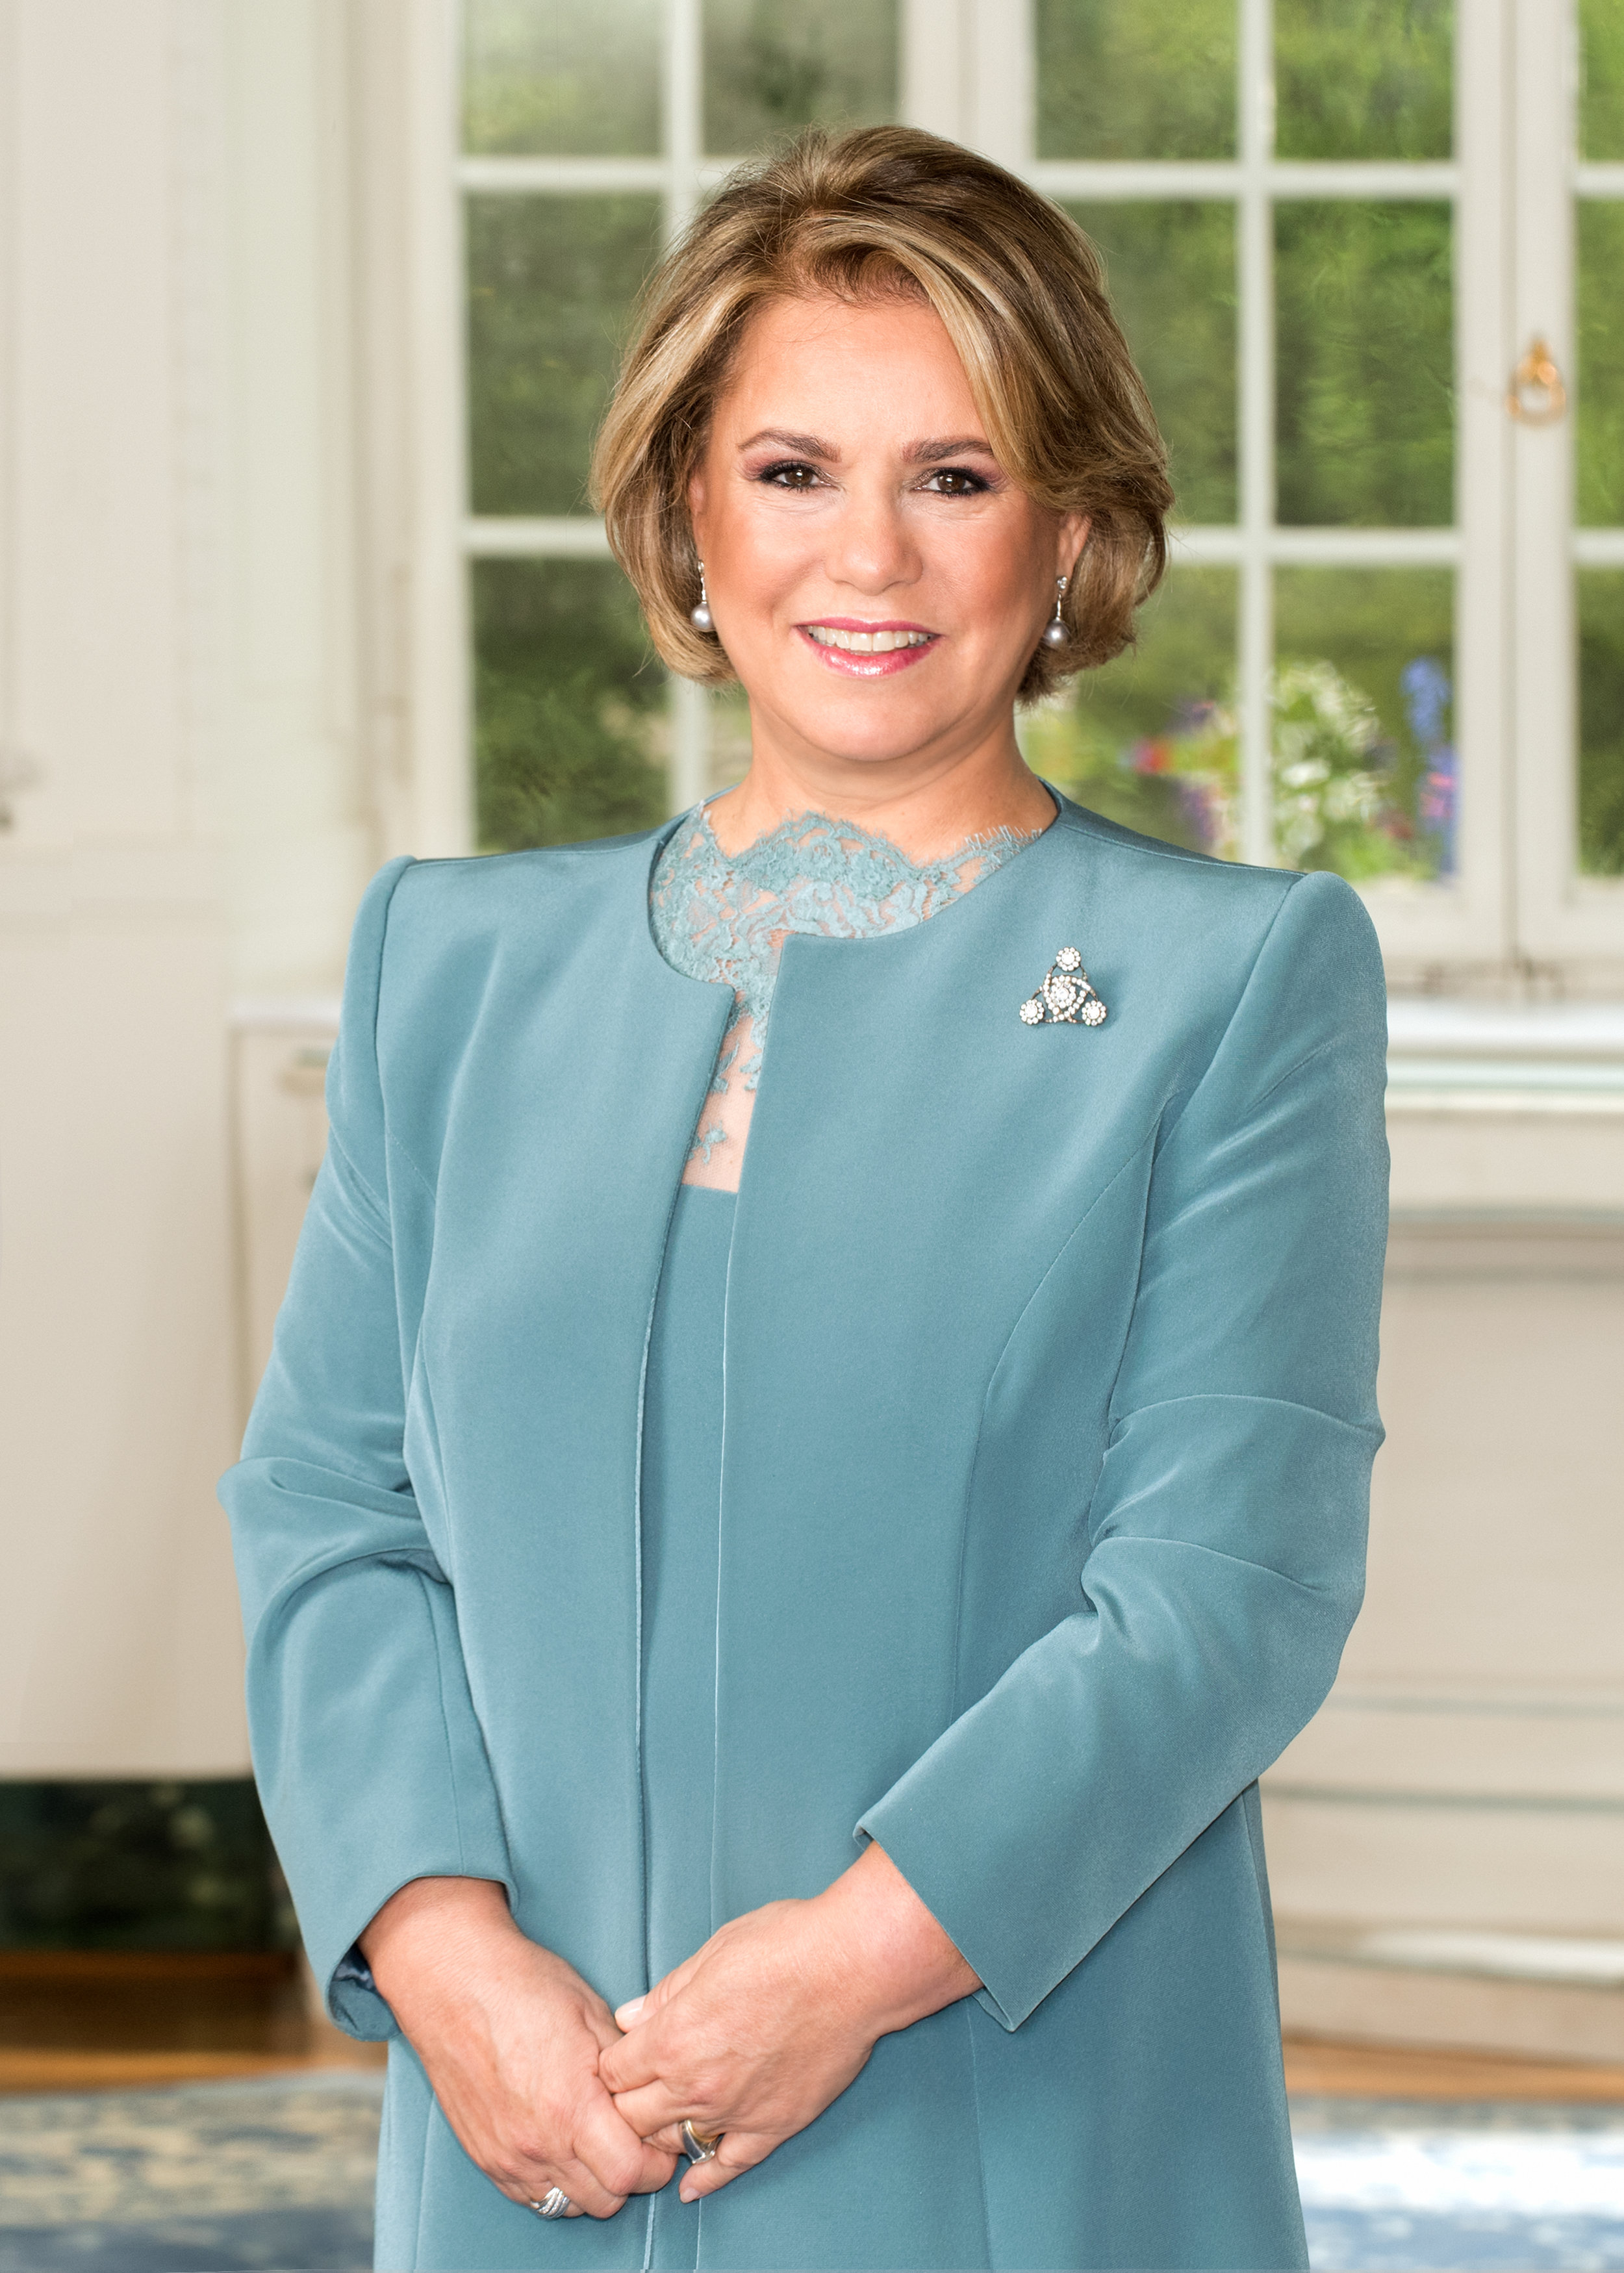 Grand Duchess Maria Teresa - Maria Teresa Mestre y Batista was born in Havana, Cuba, on March 22, 1956. She left Cuba with her family at the onset of the Cuban Revolution and moved to New York City. They would move again to Spain and before finally settling in Spain. She met Grand Duke Henri of Luxembourg while attending the Graduate Institute of International Studies at the University of Geneva. They announced their engagement on November 8, 1980, and later married on Valentine's Day 1981.They now have five children: Hereditary Grand Duke Guillaume, Prince Félix, Prince Louis, Princess Alexandra and Prince Sébastien. They also have four grandchildren: Prince Noah and Prince Gabriel (children of Prince Louis and Princess Tessy) and Princess Amalia and Prince Liam (children of Prince Félix and Princess Claire). (Photo: © Cour grand-ducale / Lola Velasco / tous droits réservés)